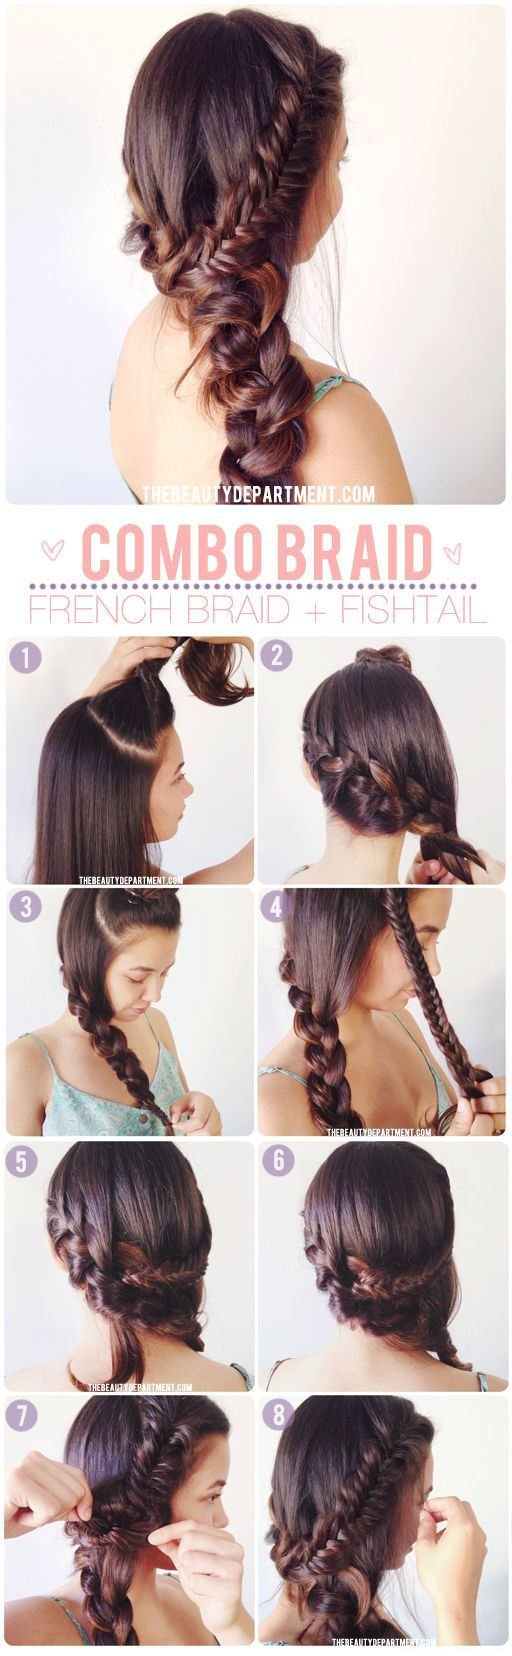 The Best Do It Yourself 10 Braided Hairstyles For A New Romantic Look Pictures